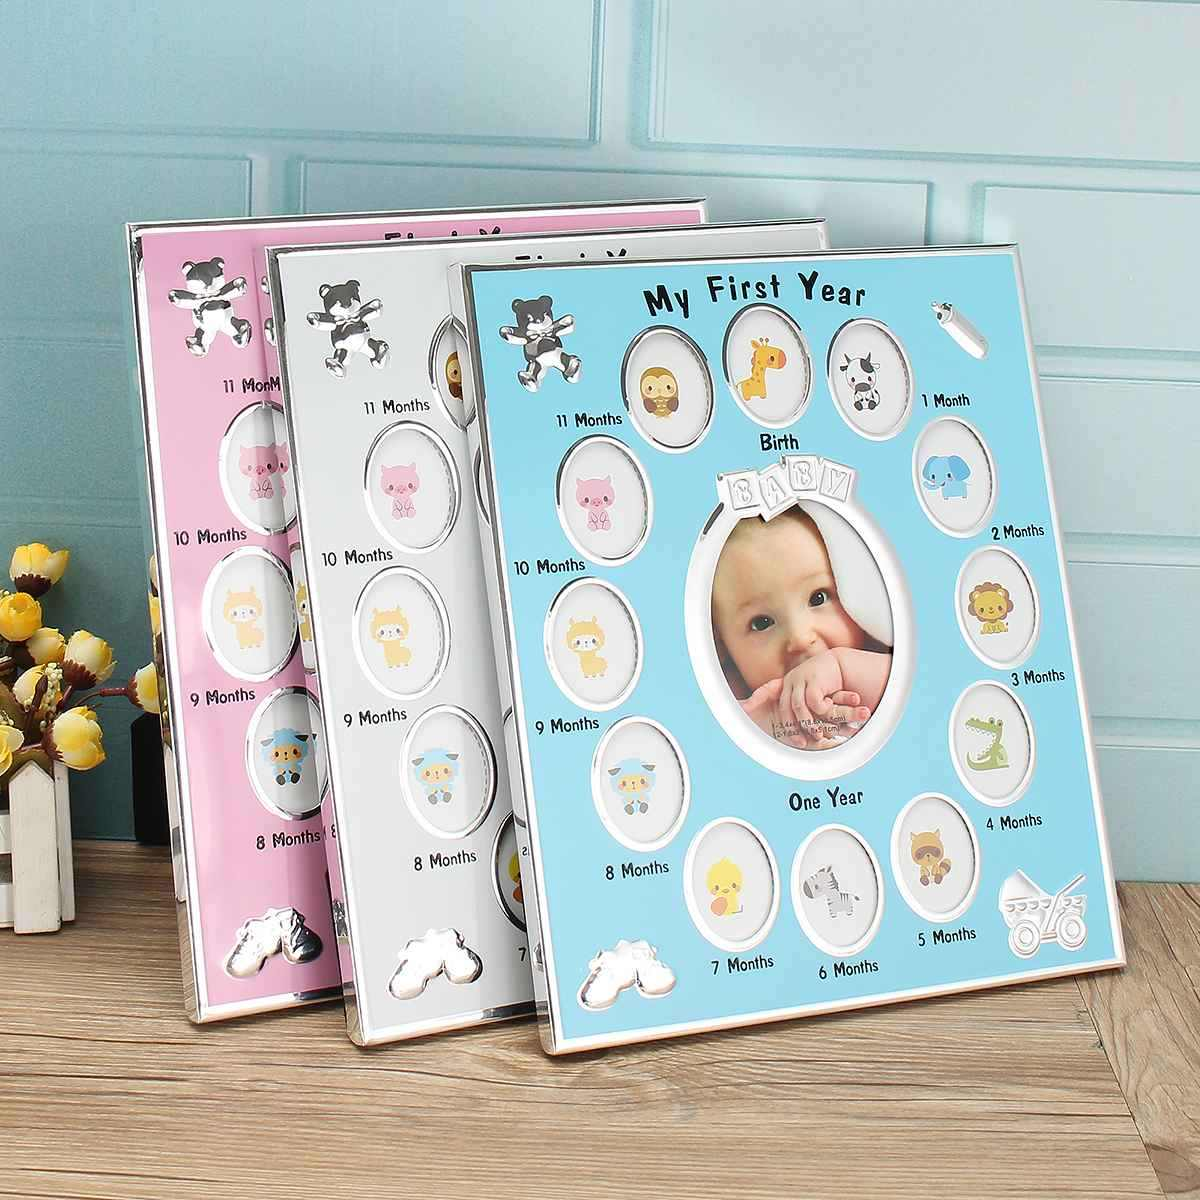 Pink/Blue/White My First Year Baby Gift Kids Birthday Gift Home Family Decoration Ornaments 12 Months Picture Photo Frame